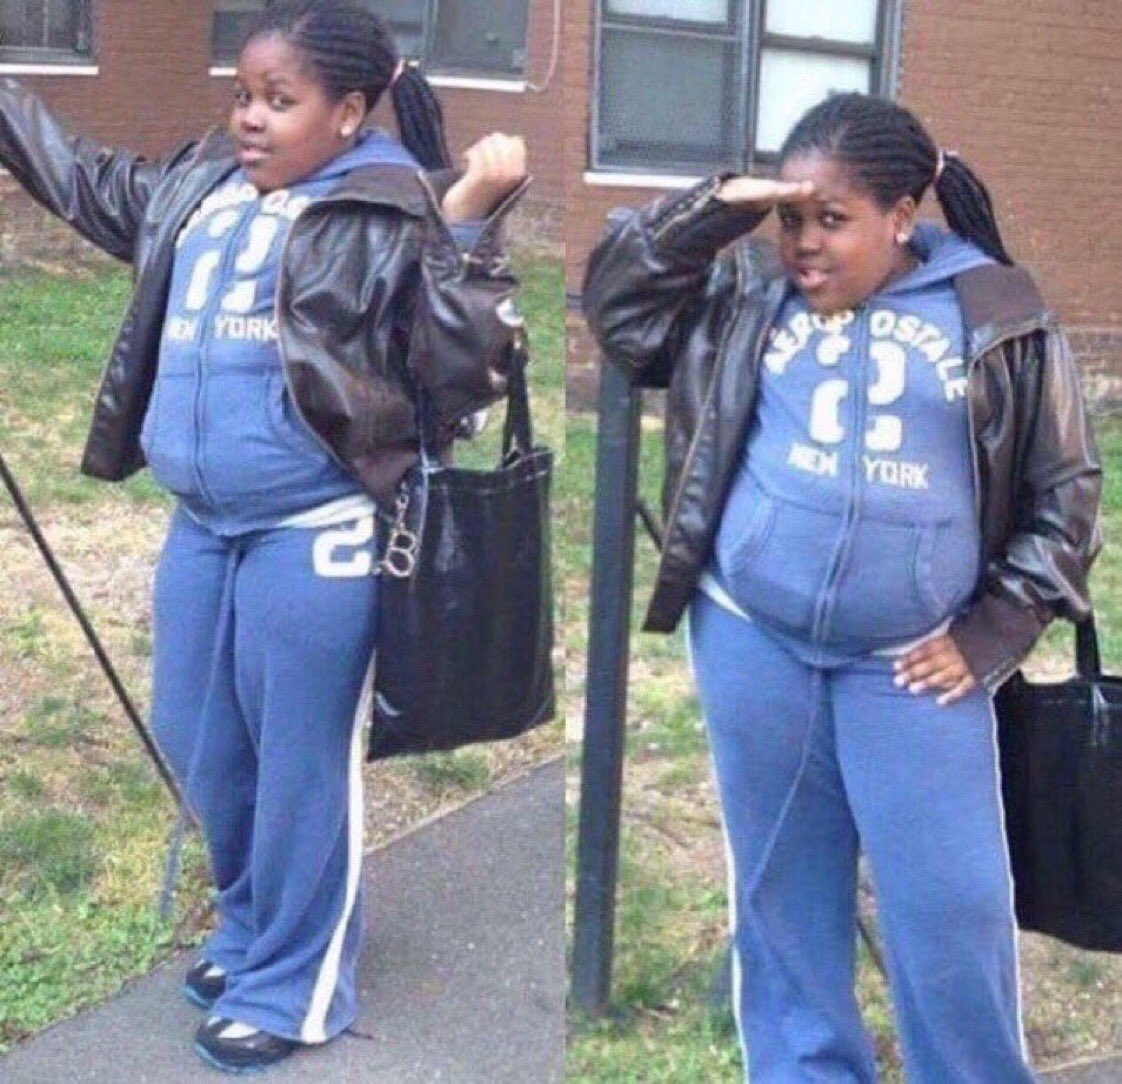 me searching for someone to pay for my nose job